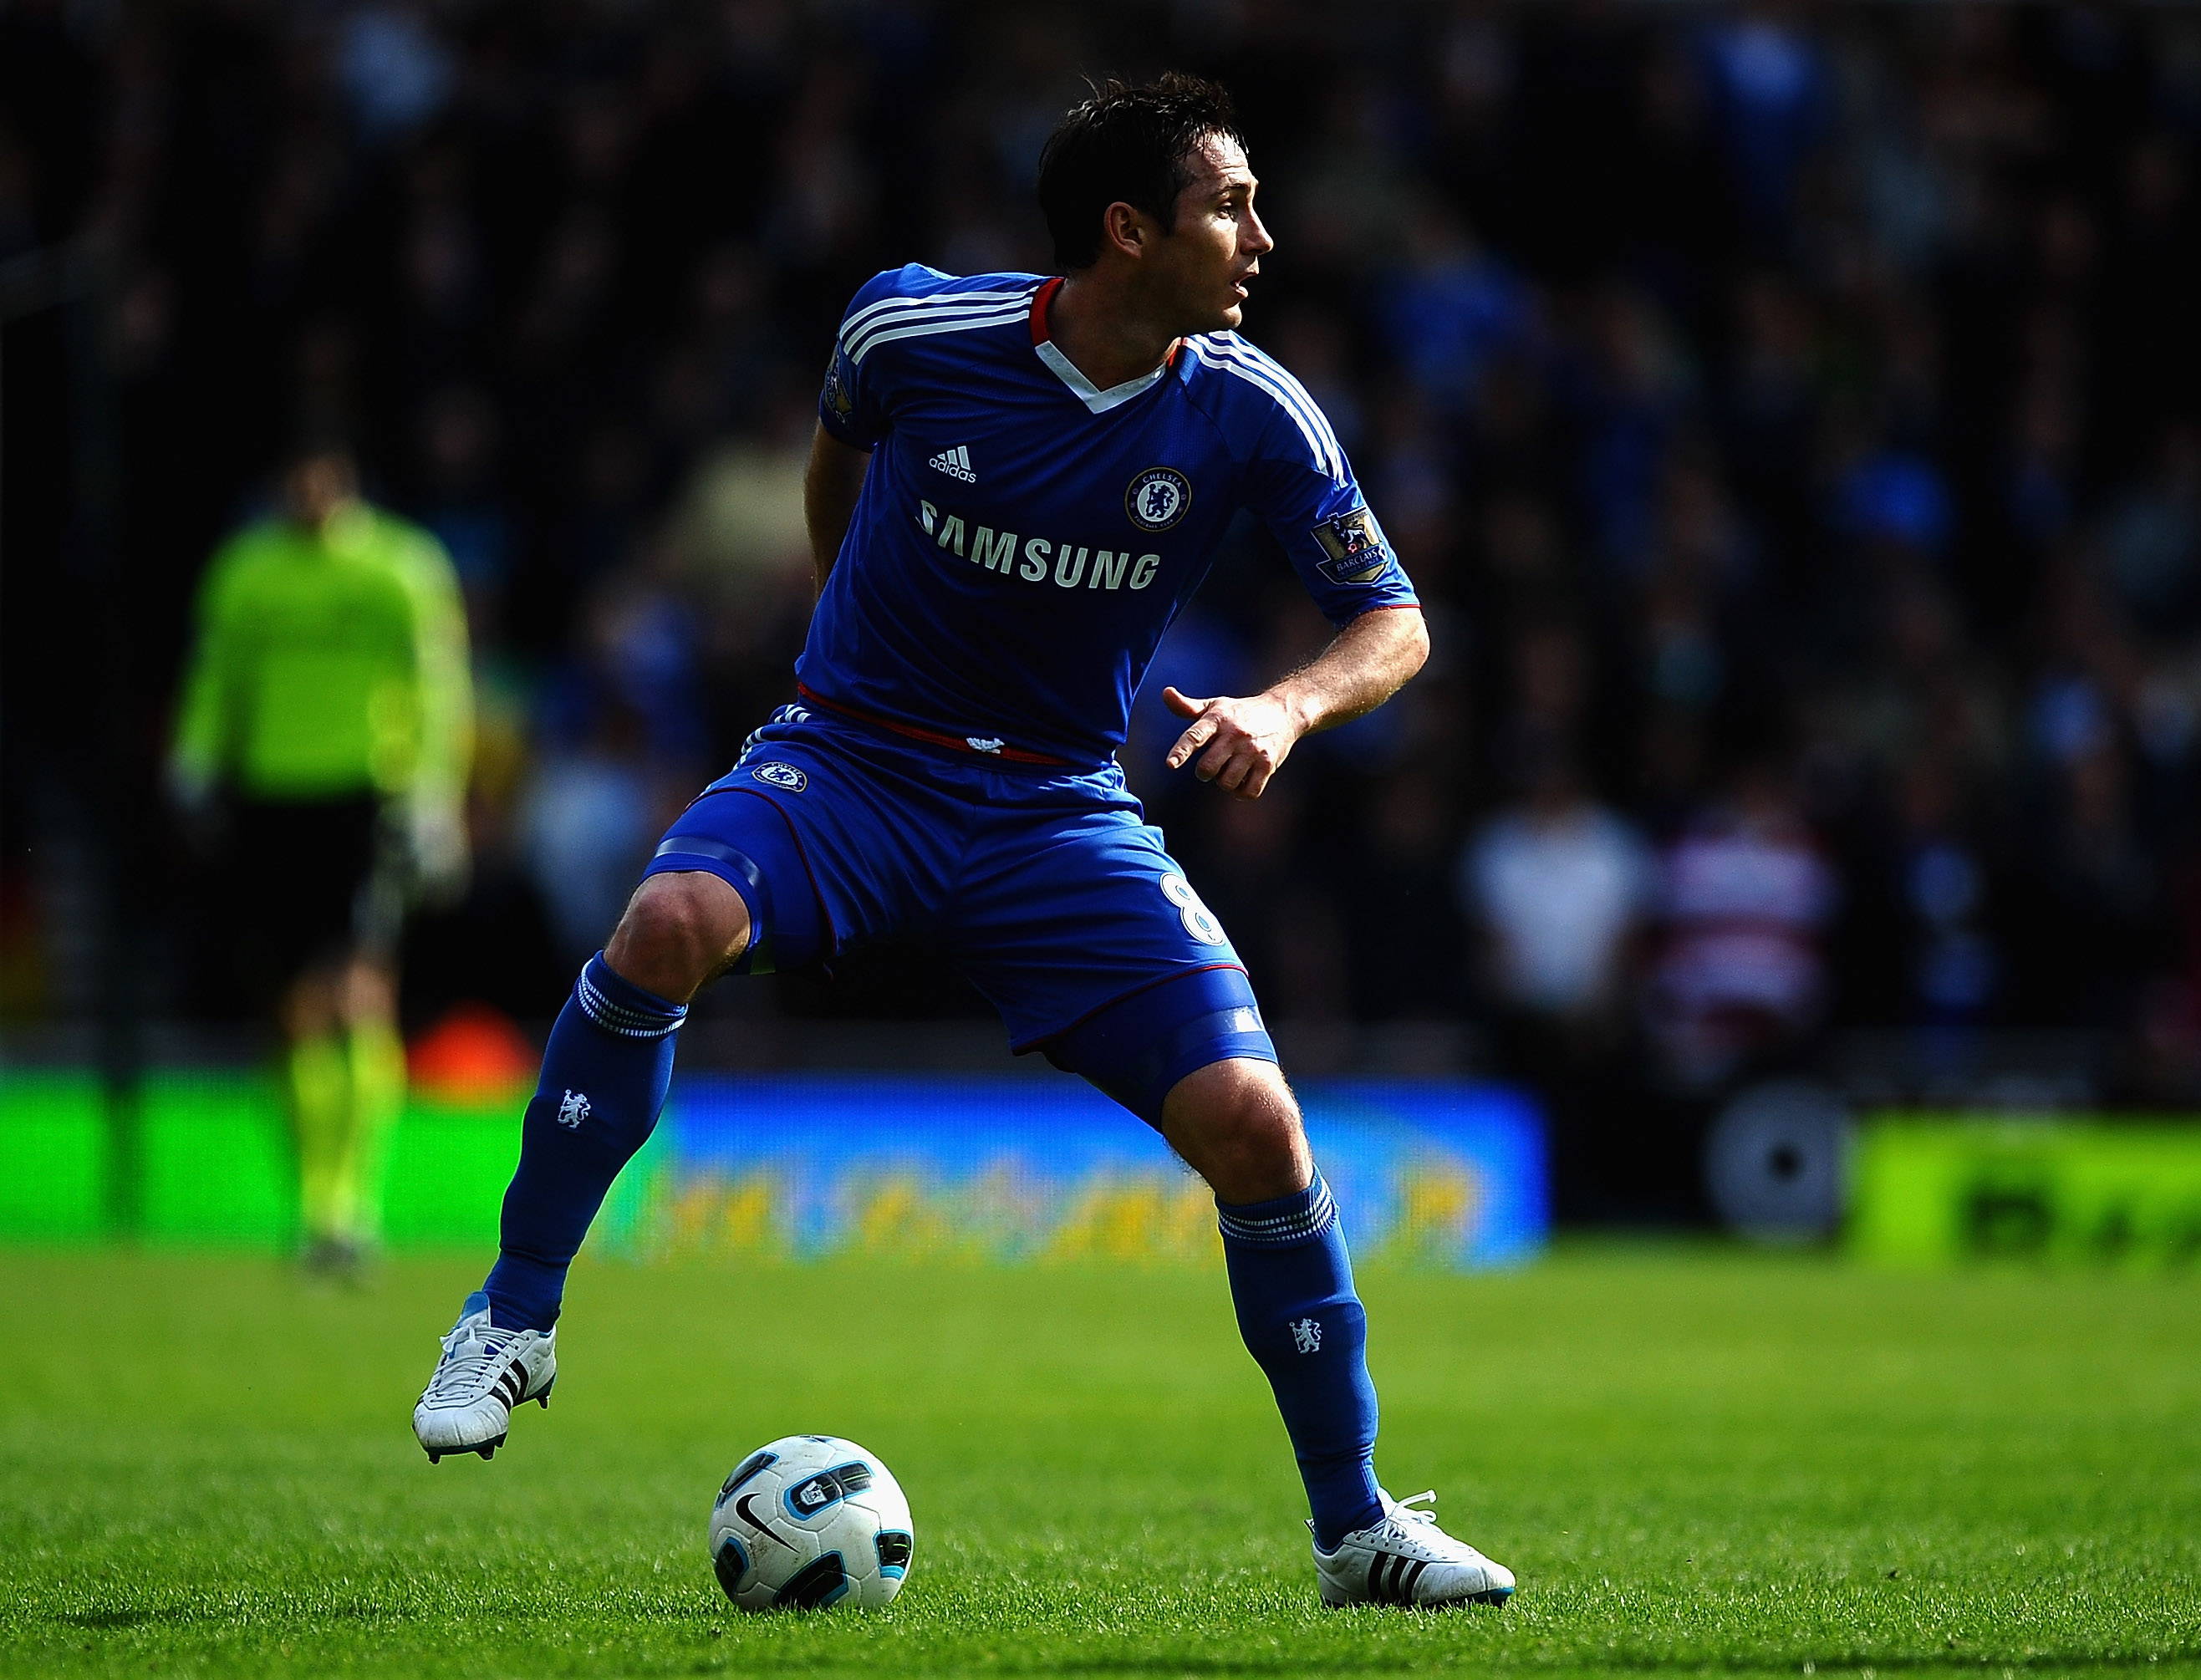 STOKE ON TRENT, ENGLAND - APRIL 02: Frank Lampard of Chelsea in action during the Barclays Premier League match between Stoke City and Chelsea at Britannia Stadium on April 2, 2011 in Stoke on Trent, England.  (Photo by Laurence Griffiths/Getty Images)